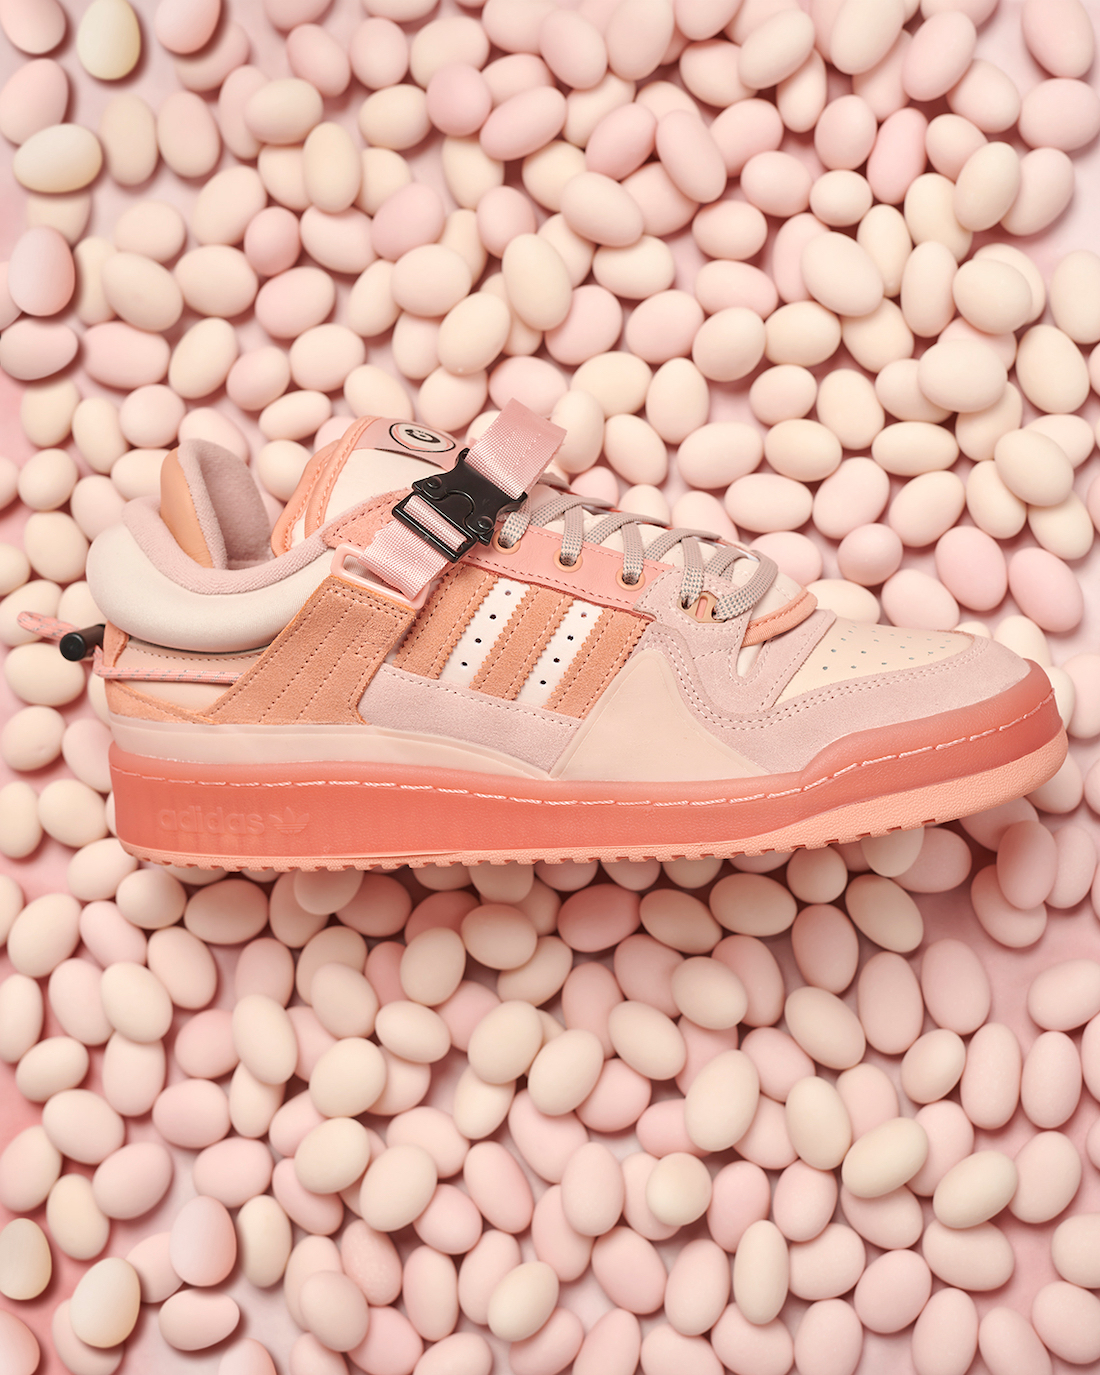 Bad-Bunny-adidas-Forum-Buckle-Low-Easter-Egg-GW0265-Release-Date-4